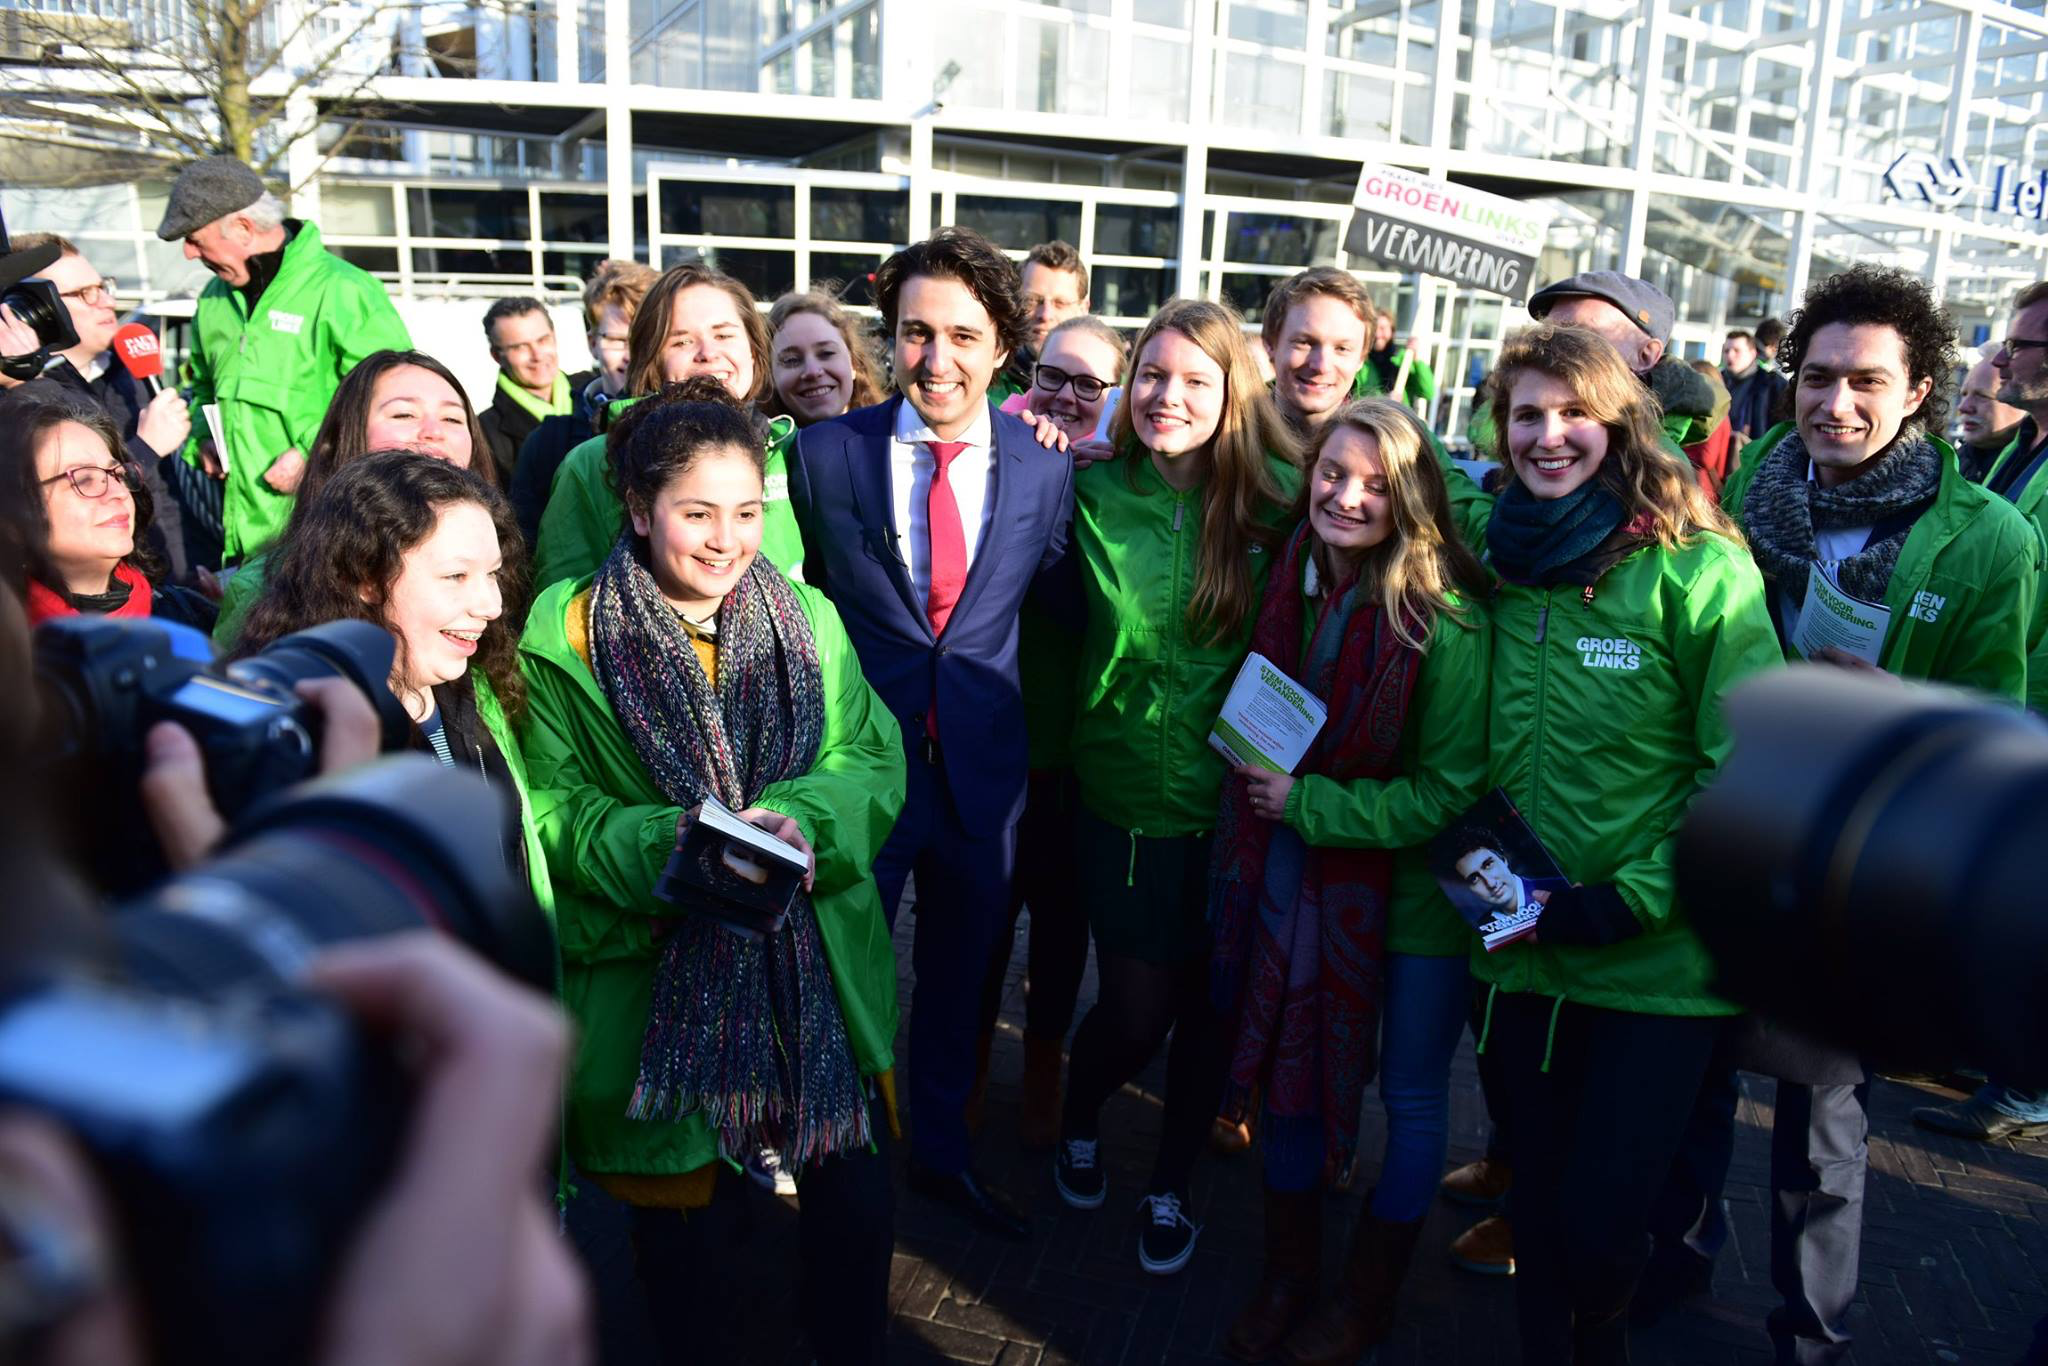 Netherlands Elections: Dutch Green Party GroenLinks Casts